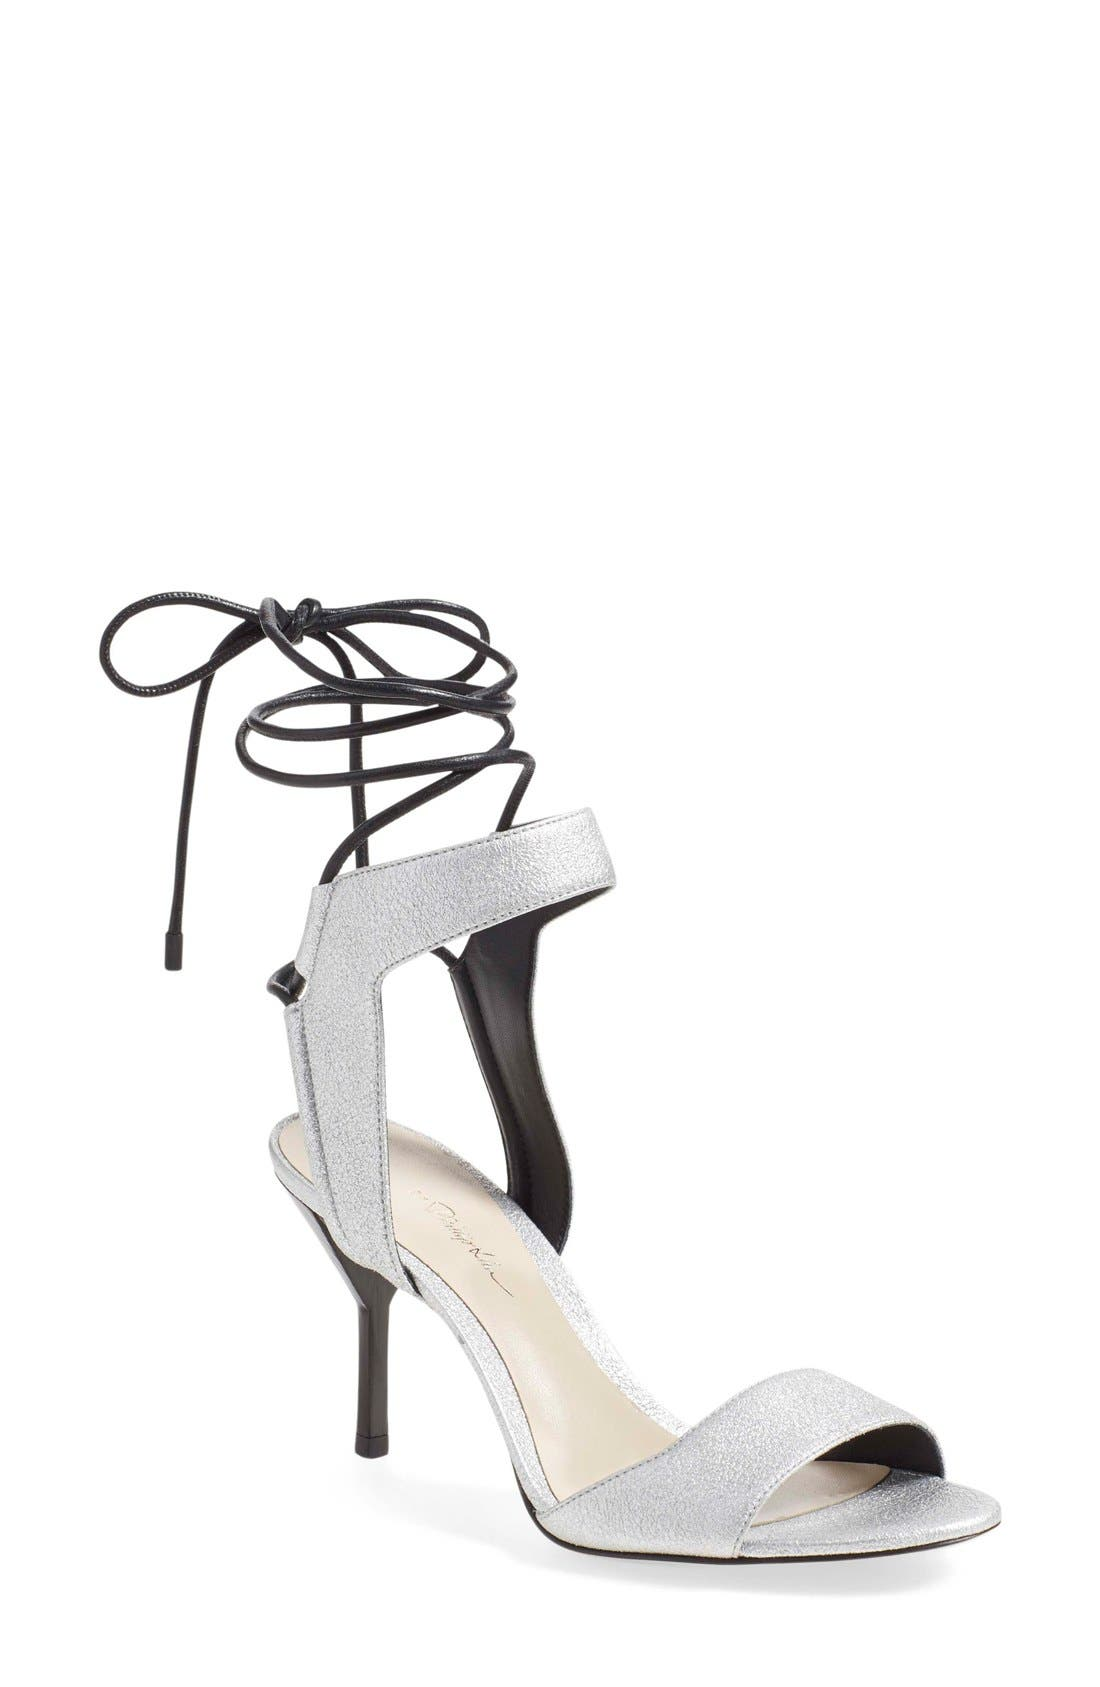 Alternate Image 1 Selected - 3.1 Phillip Lim 'Martini' Wraparound Ankle Strap Sandal (Women)